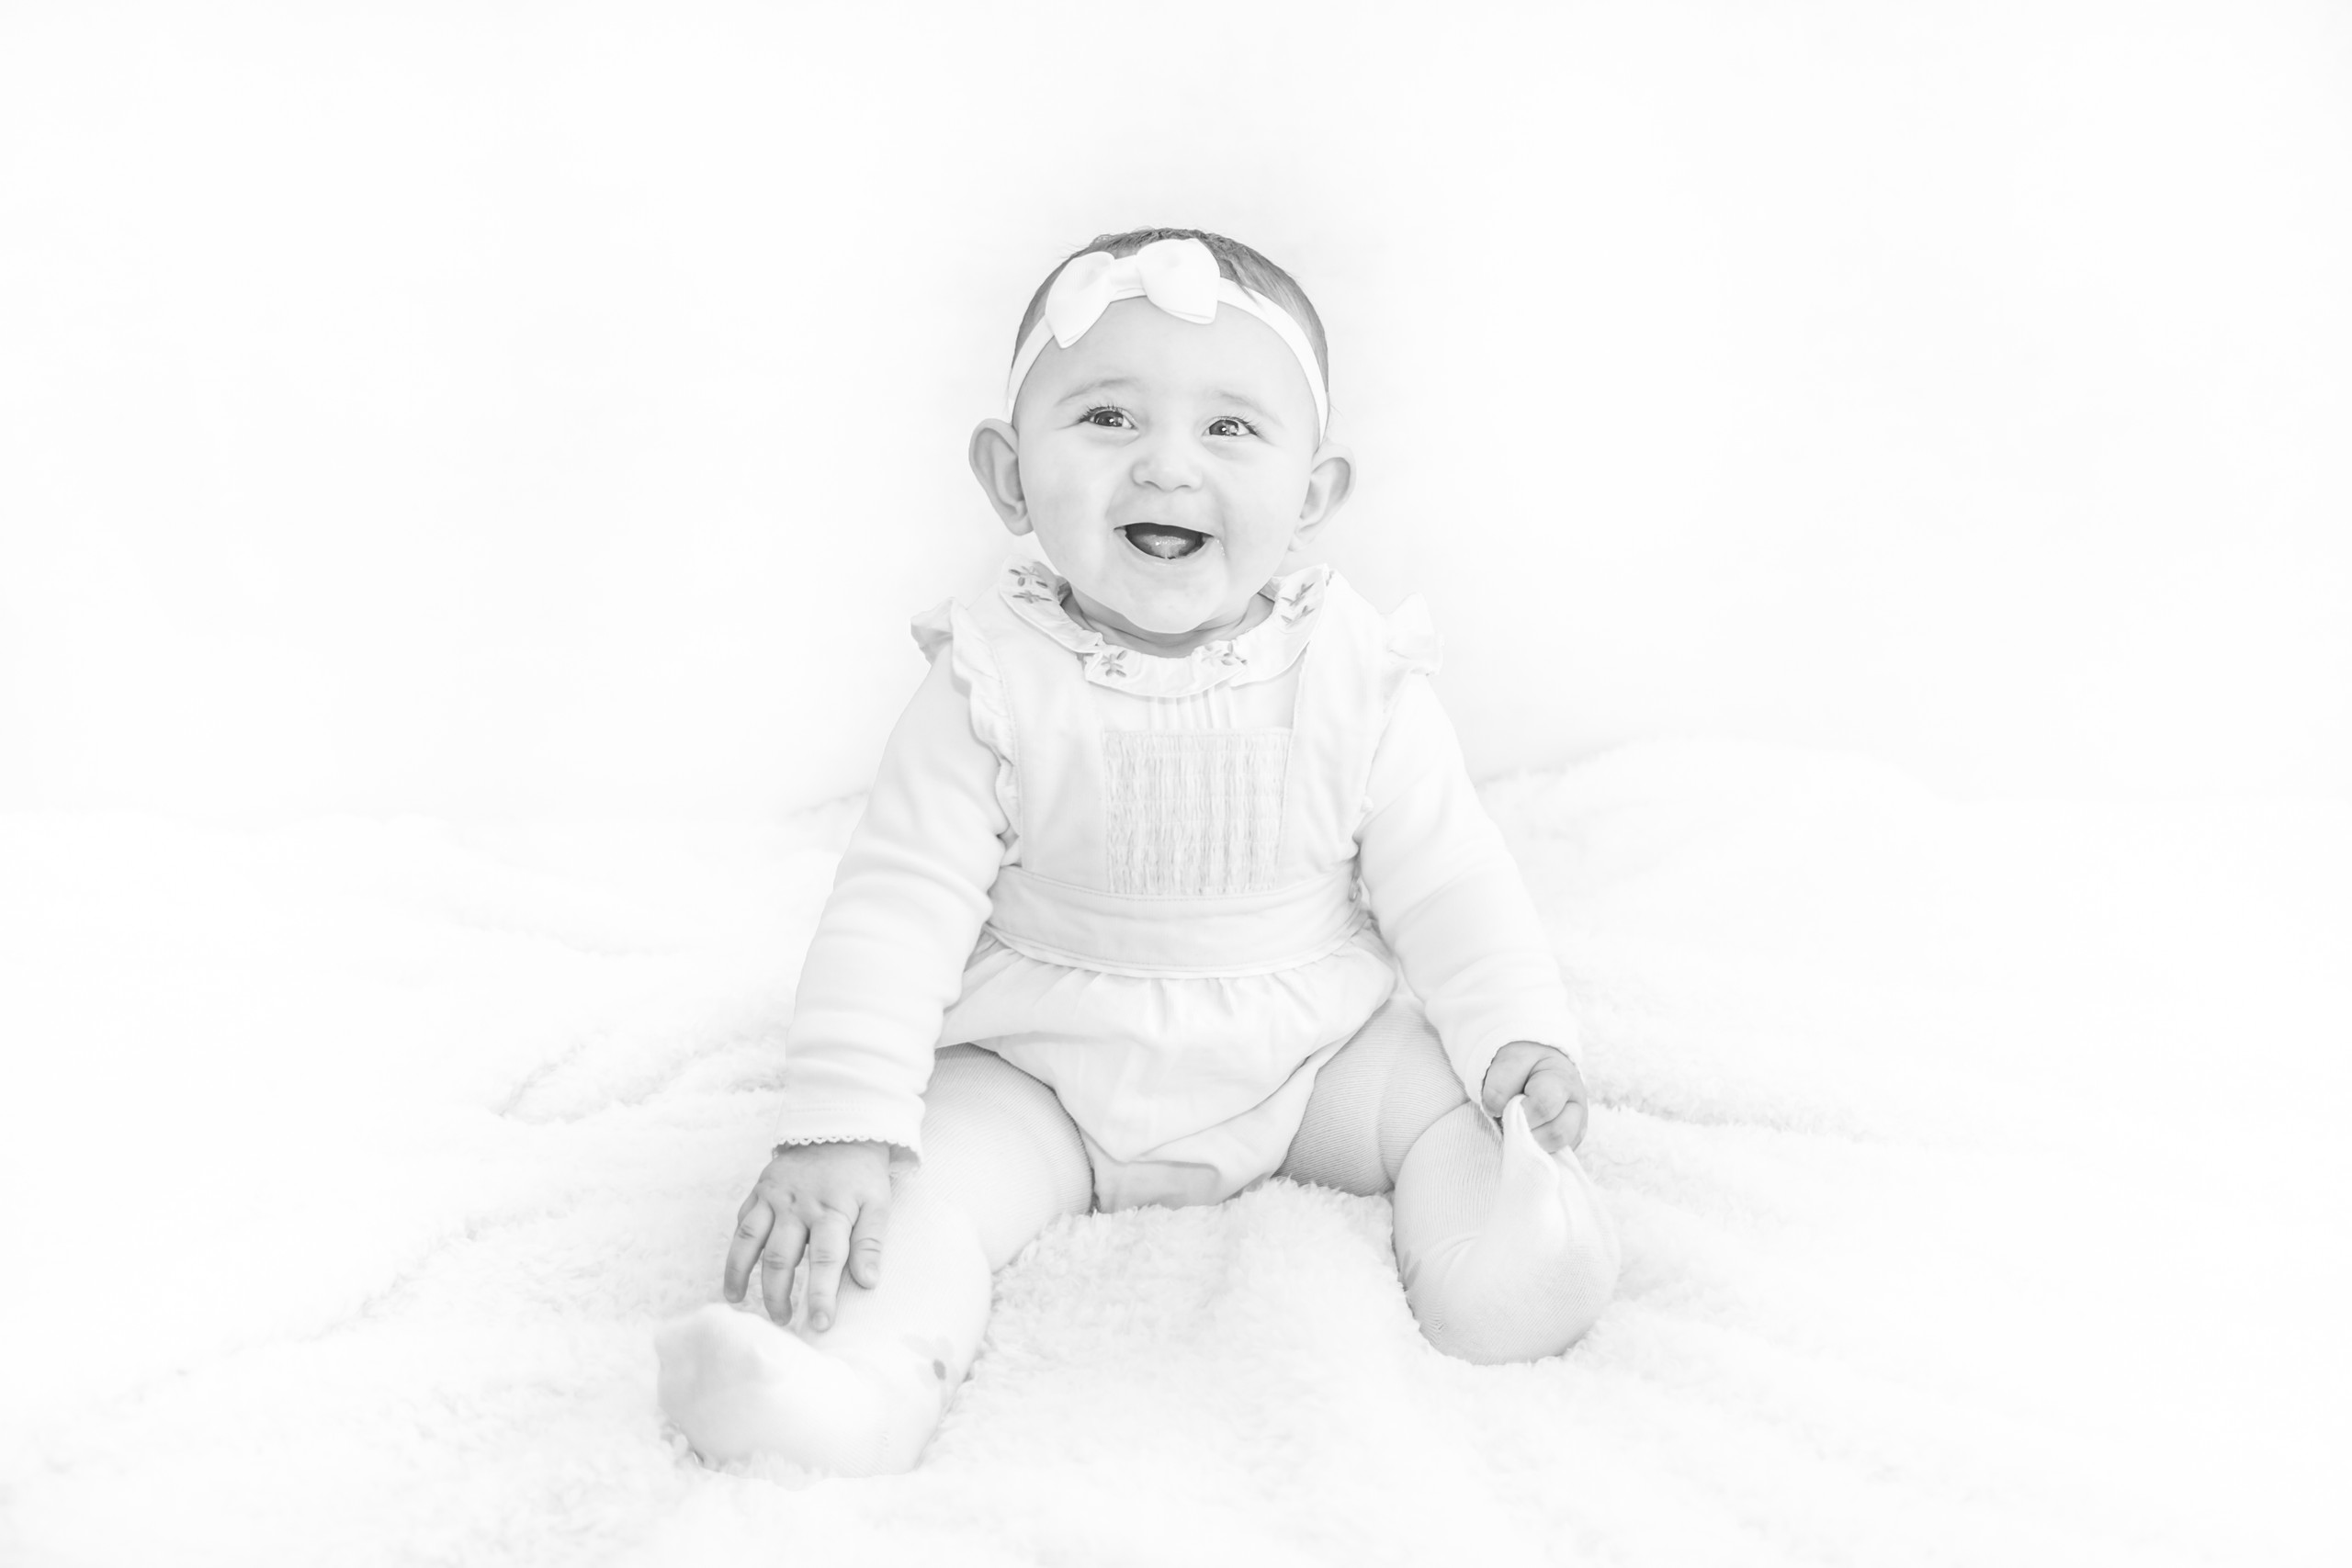 Swansea Family Portrait Black and White Photography. Photographer also covers the Gower, Carmarthenshire, Llanelli and South Wales for Photo Shoots